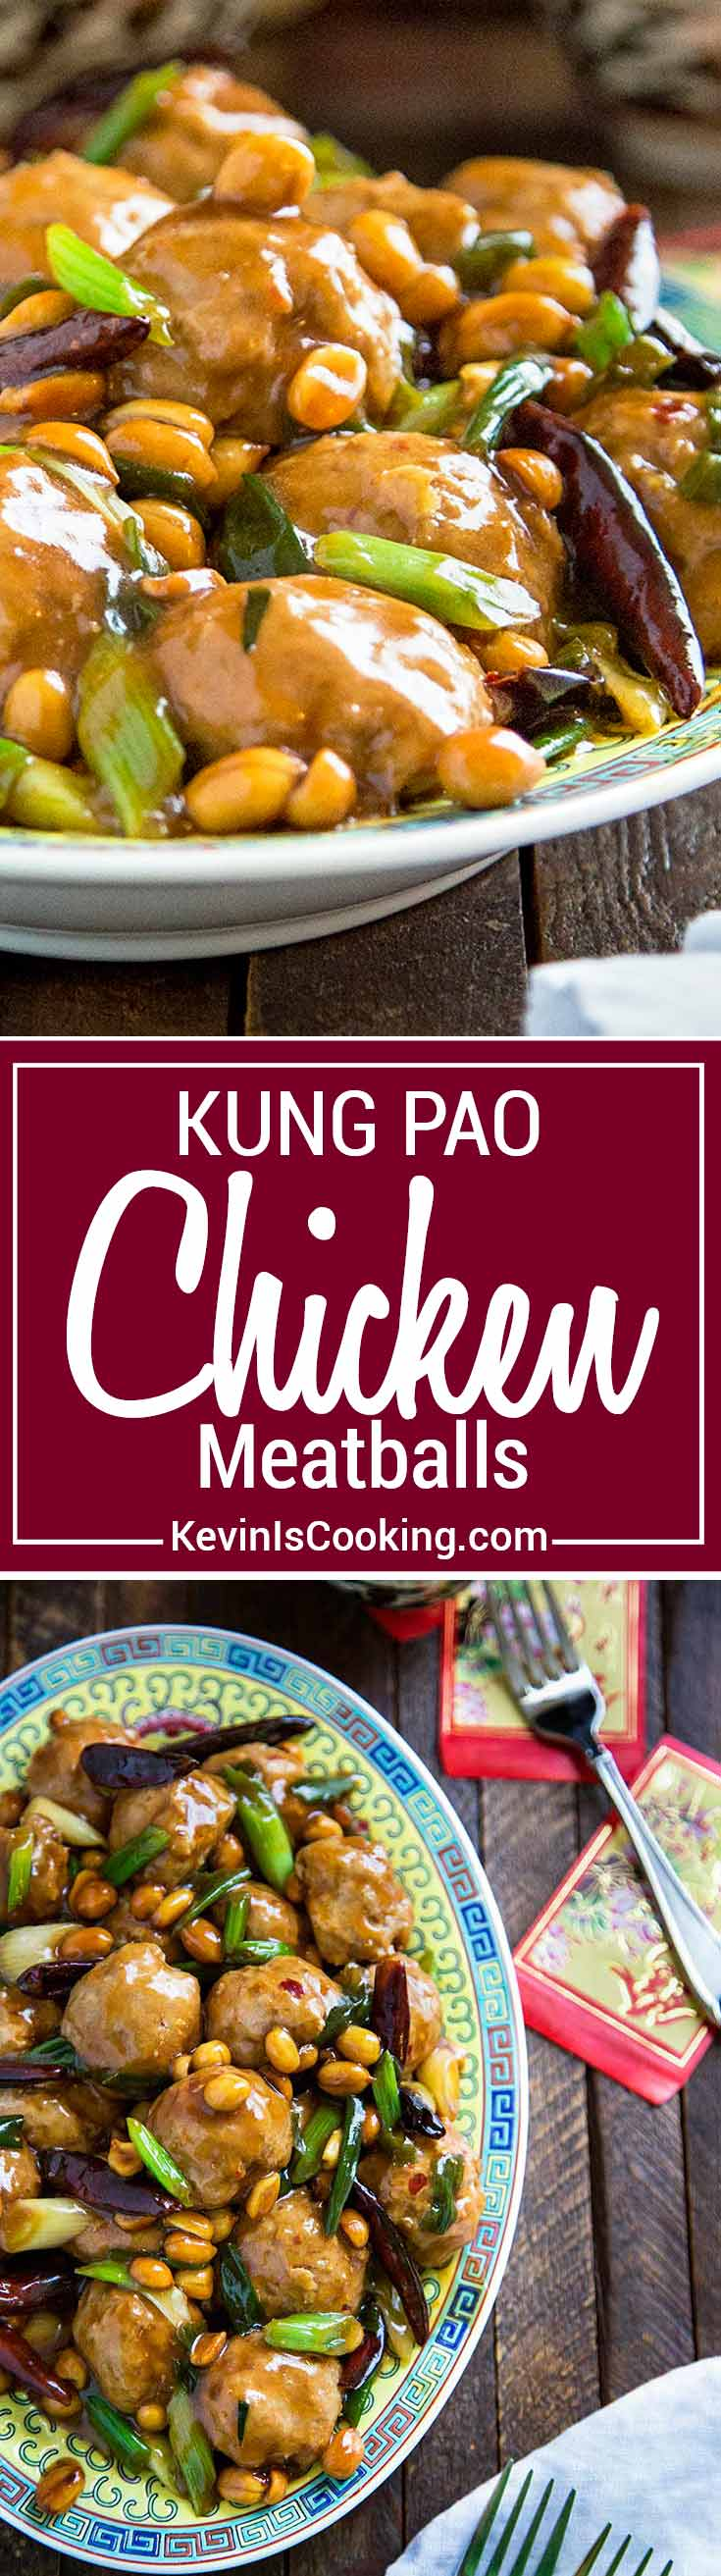 These Kung Pao Chicken Meatballs are made with a bit of added peanut butter, chili paste in the chicken mixture and coated in a wonderfully authentic pan sauce. Off the hook tasty and double as a great appetizer!